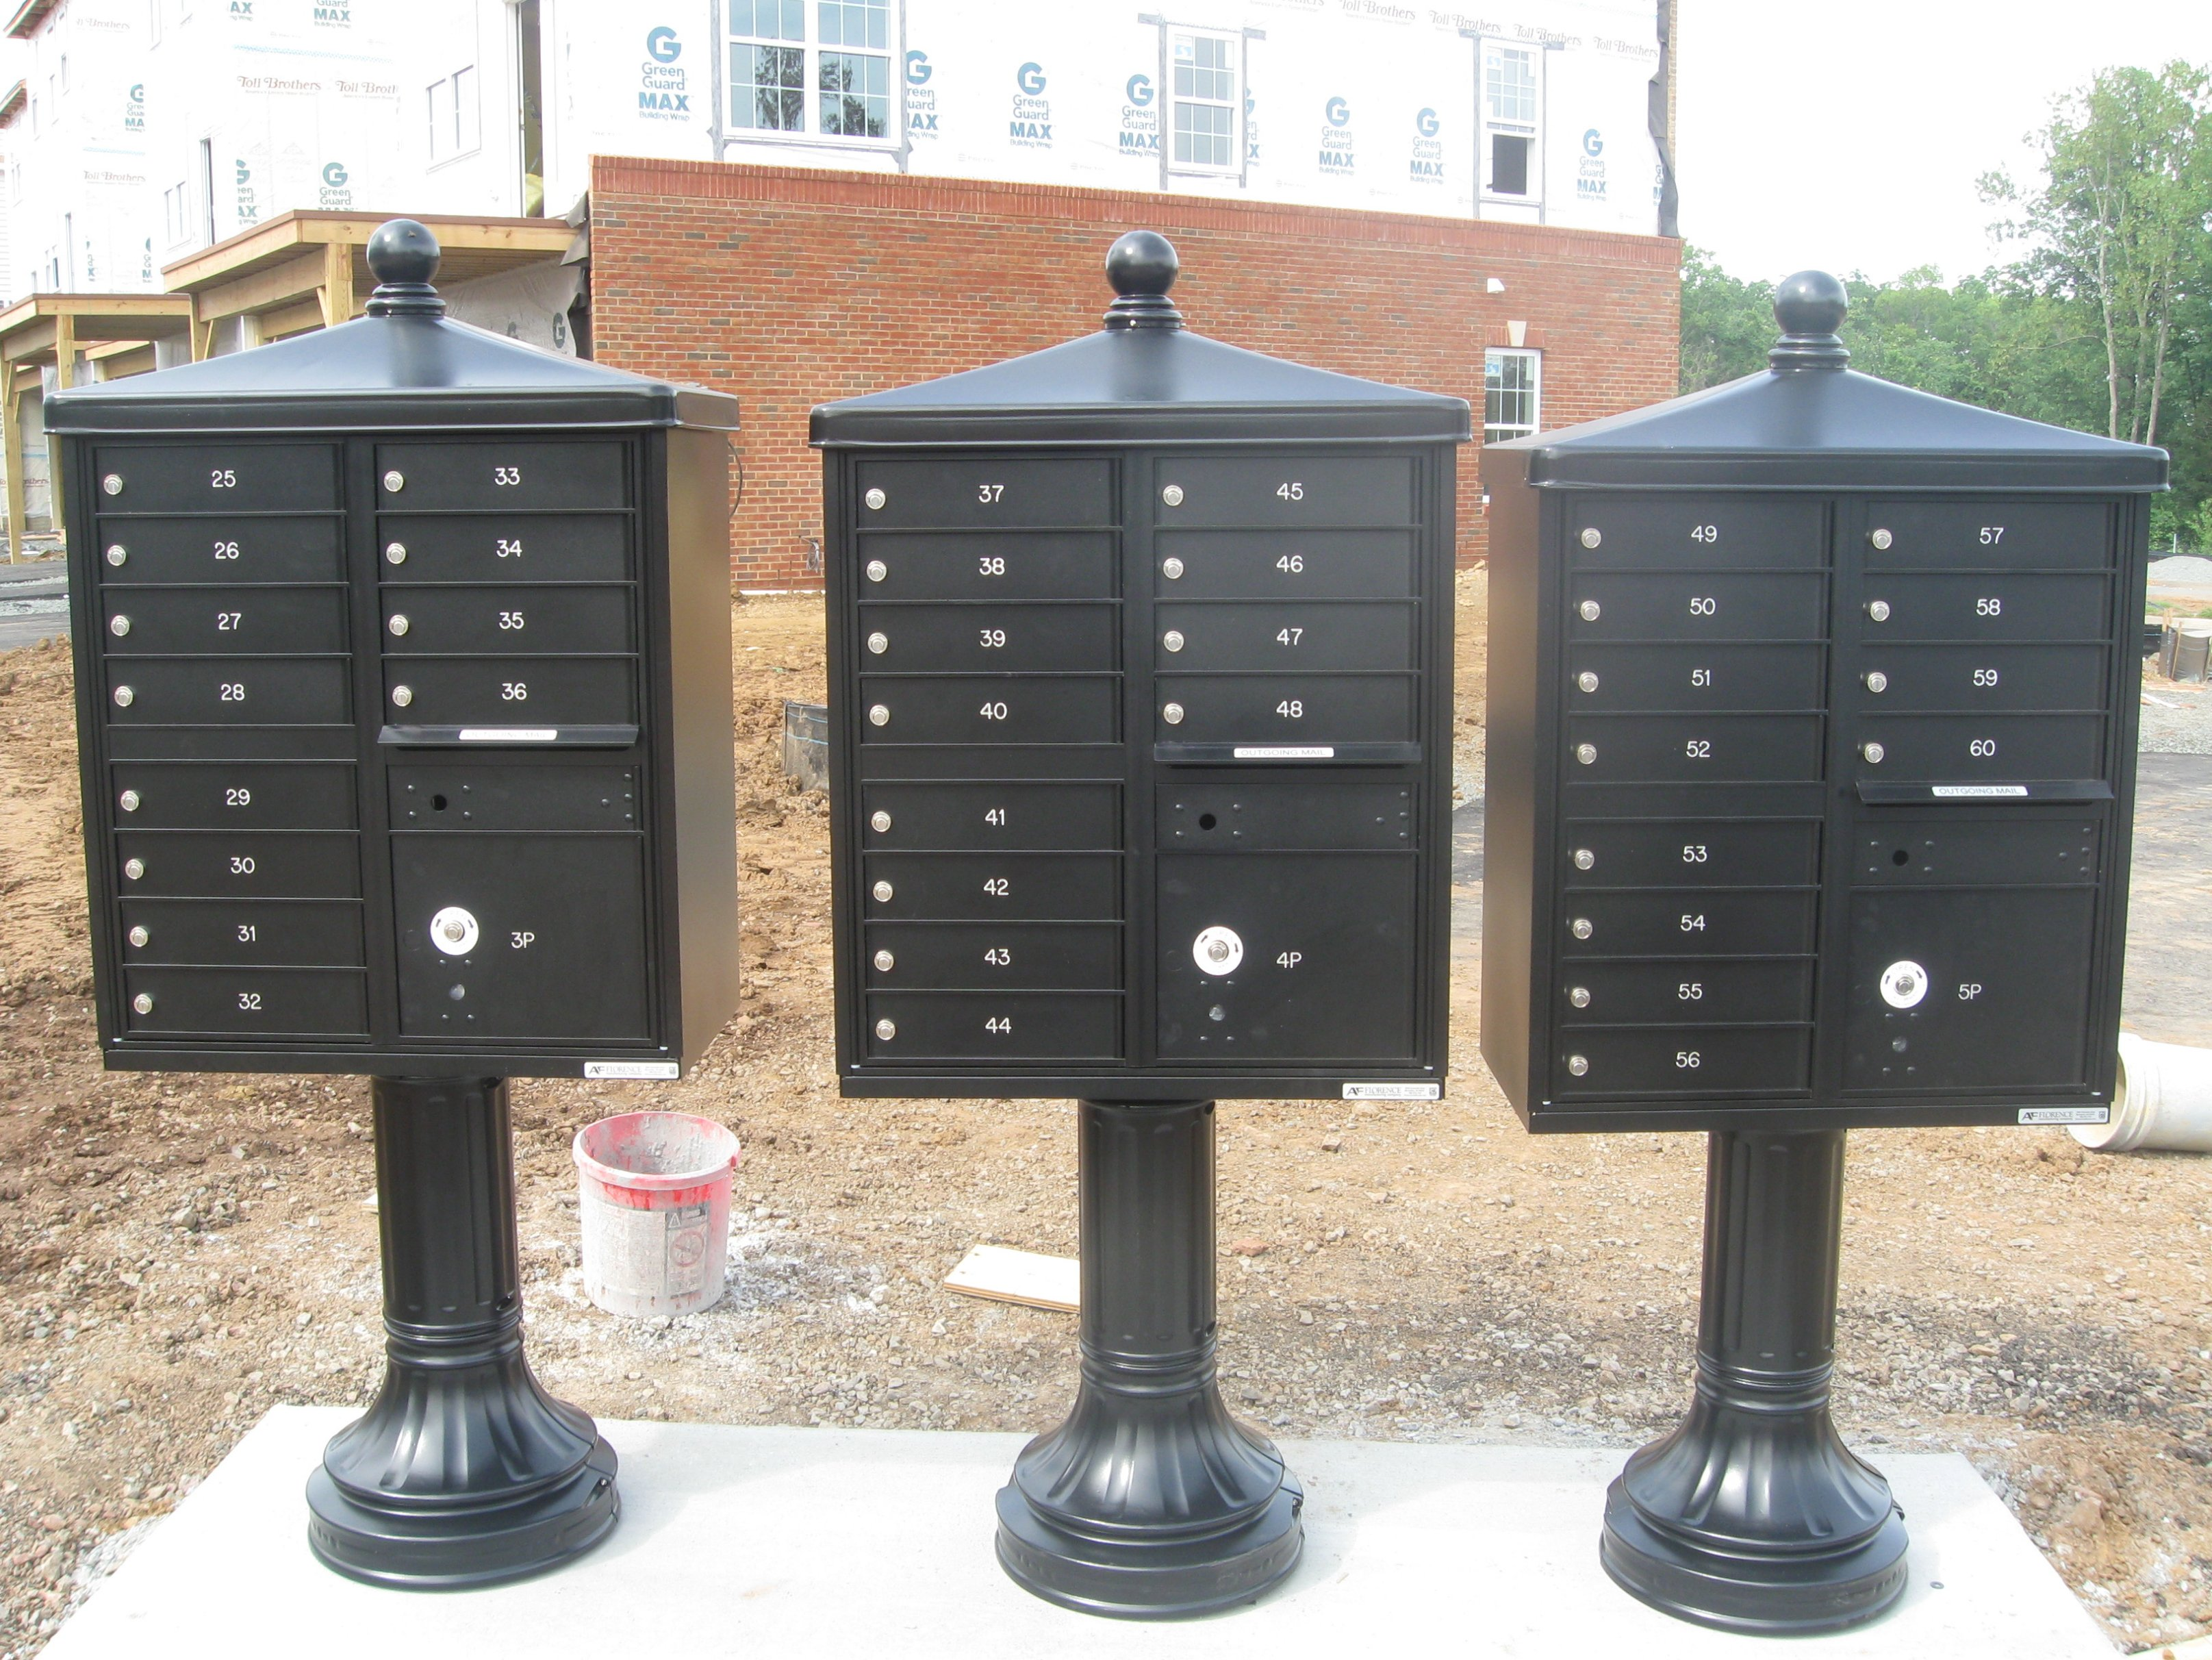 Apartment mailbox pedistal set